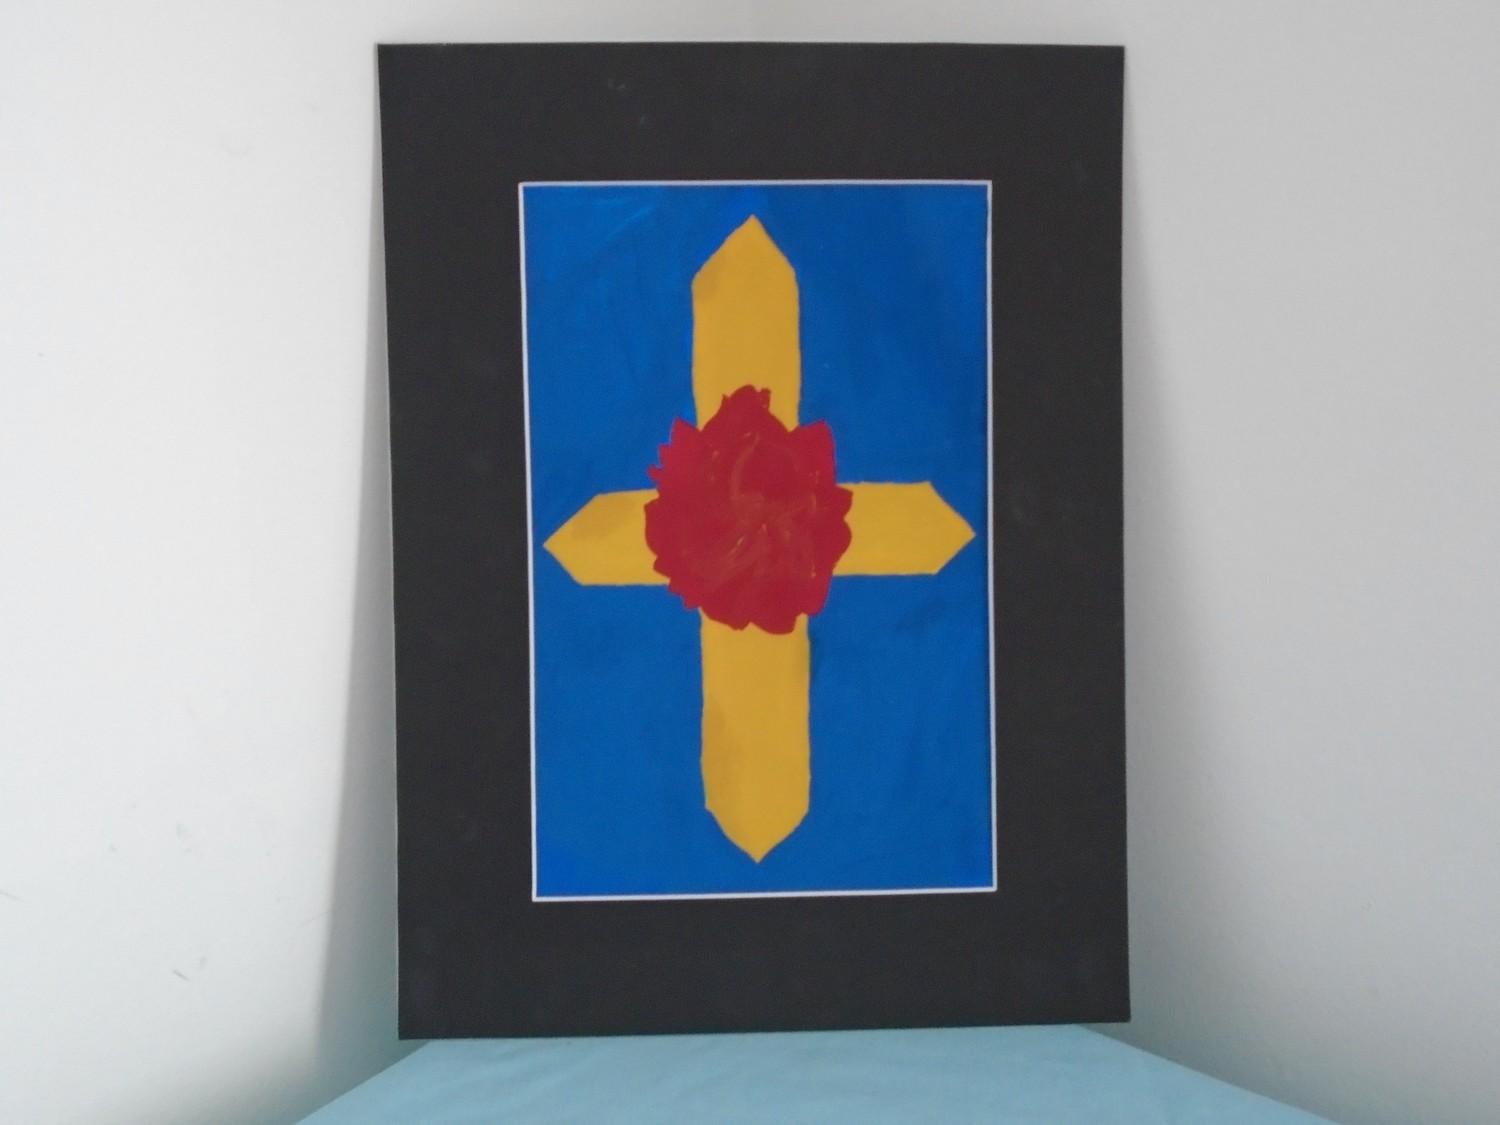 Rose Cross Original Gouache Painting On Art Paper With Black Cardboard Frame 12x16 In